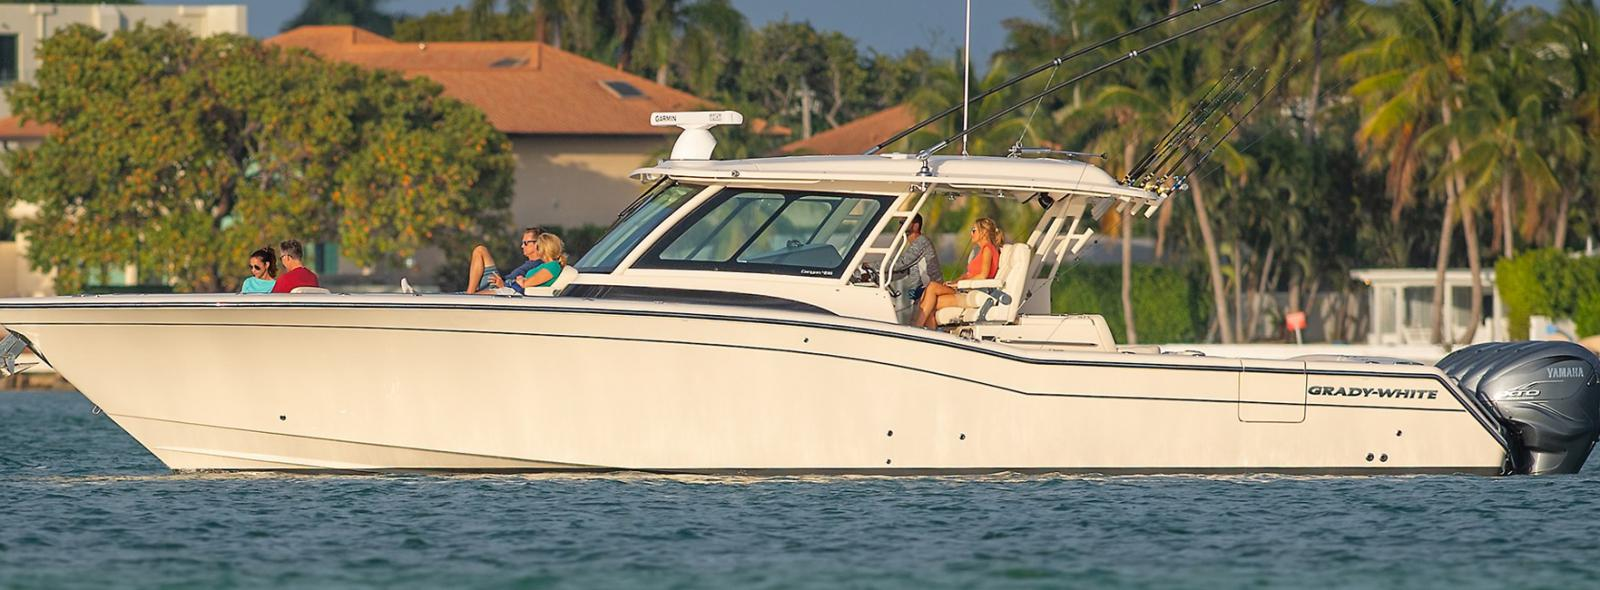 Atlantic Marine | New Grady White Boats | Boat Dealers